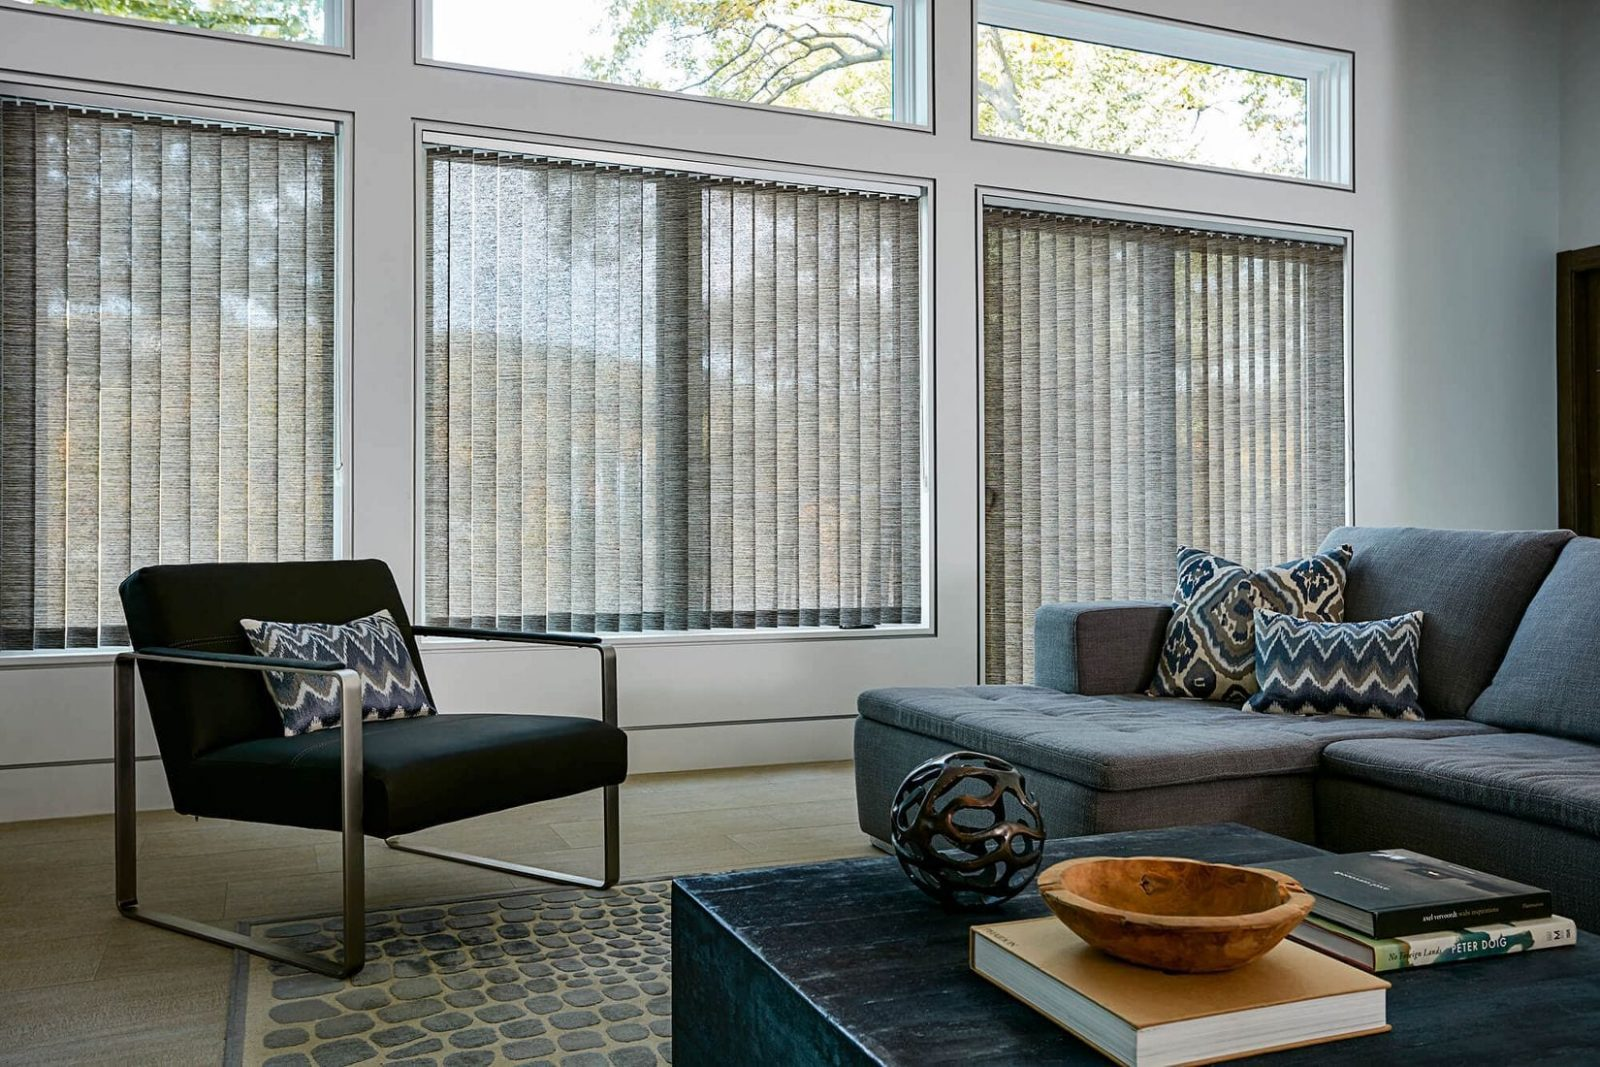 How To Buy Blinds.How To Buy Blinds And Shades New Theory Magazine